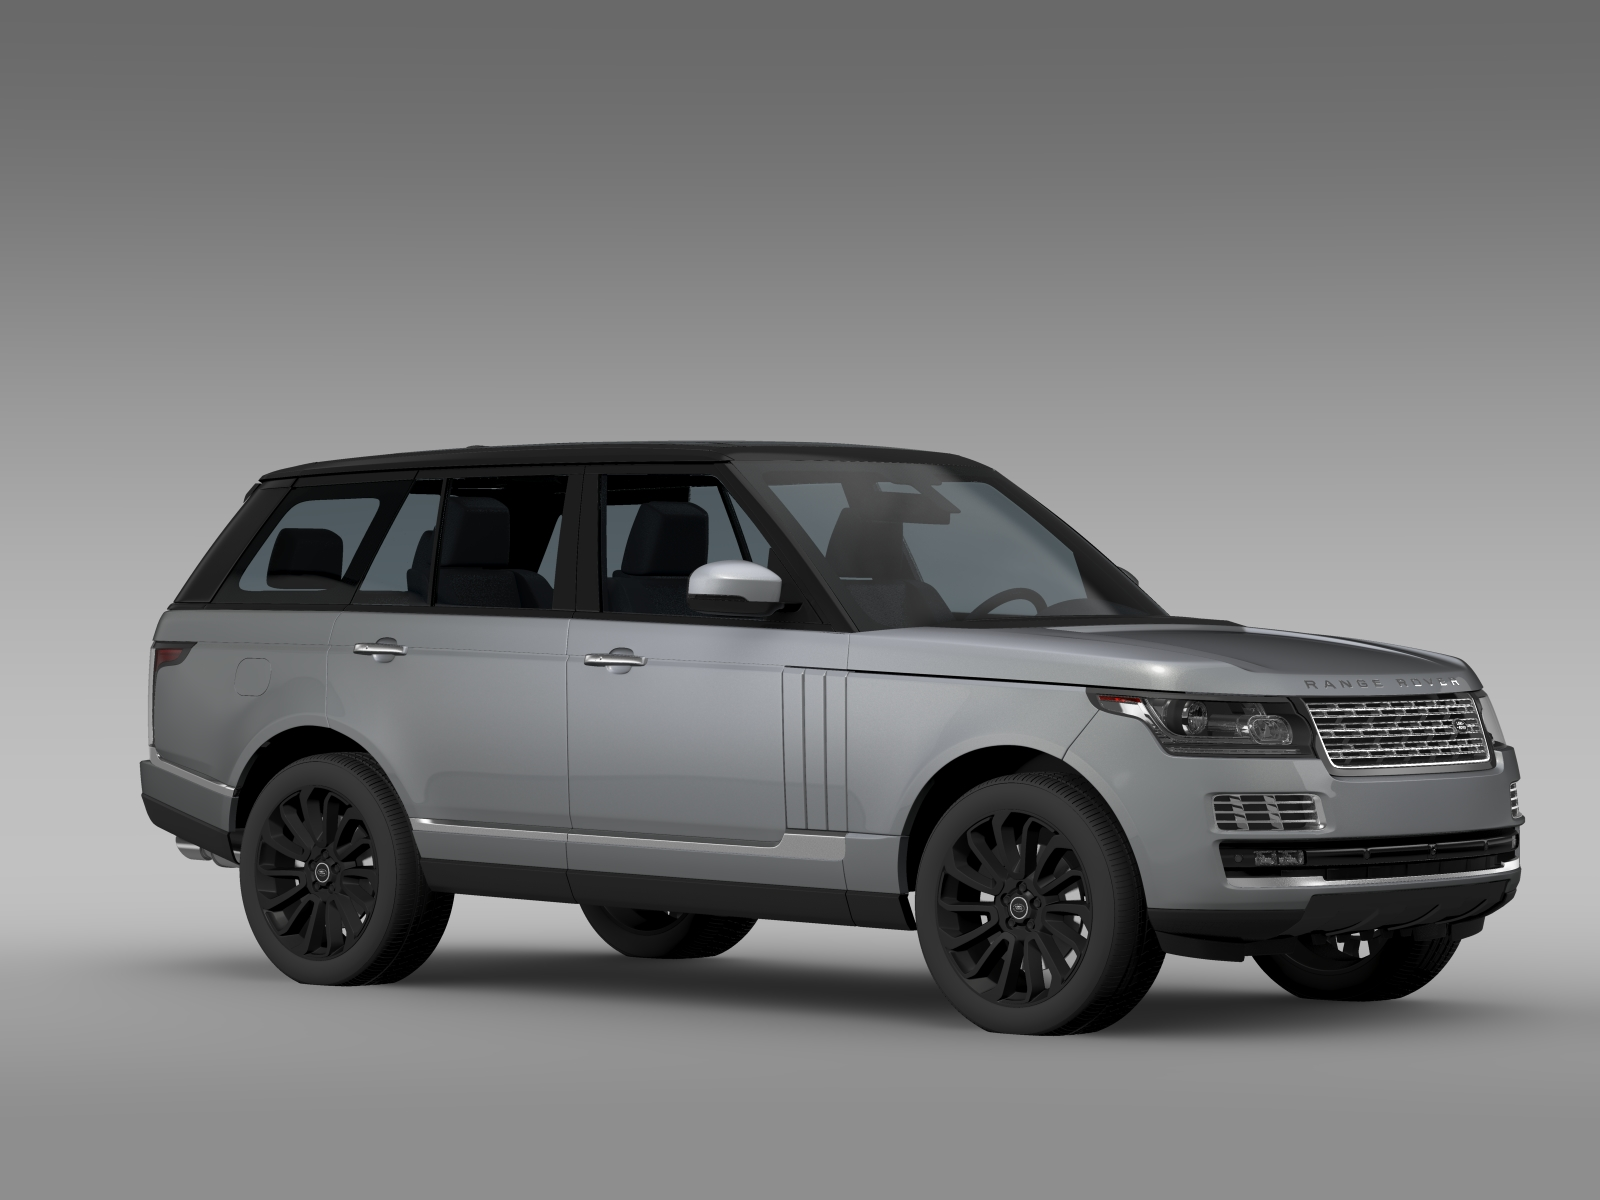 range rover svautobiography l405 2016 v1 3d model buy. Black Bedroom Furniture Sets. Home Design Ideas